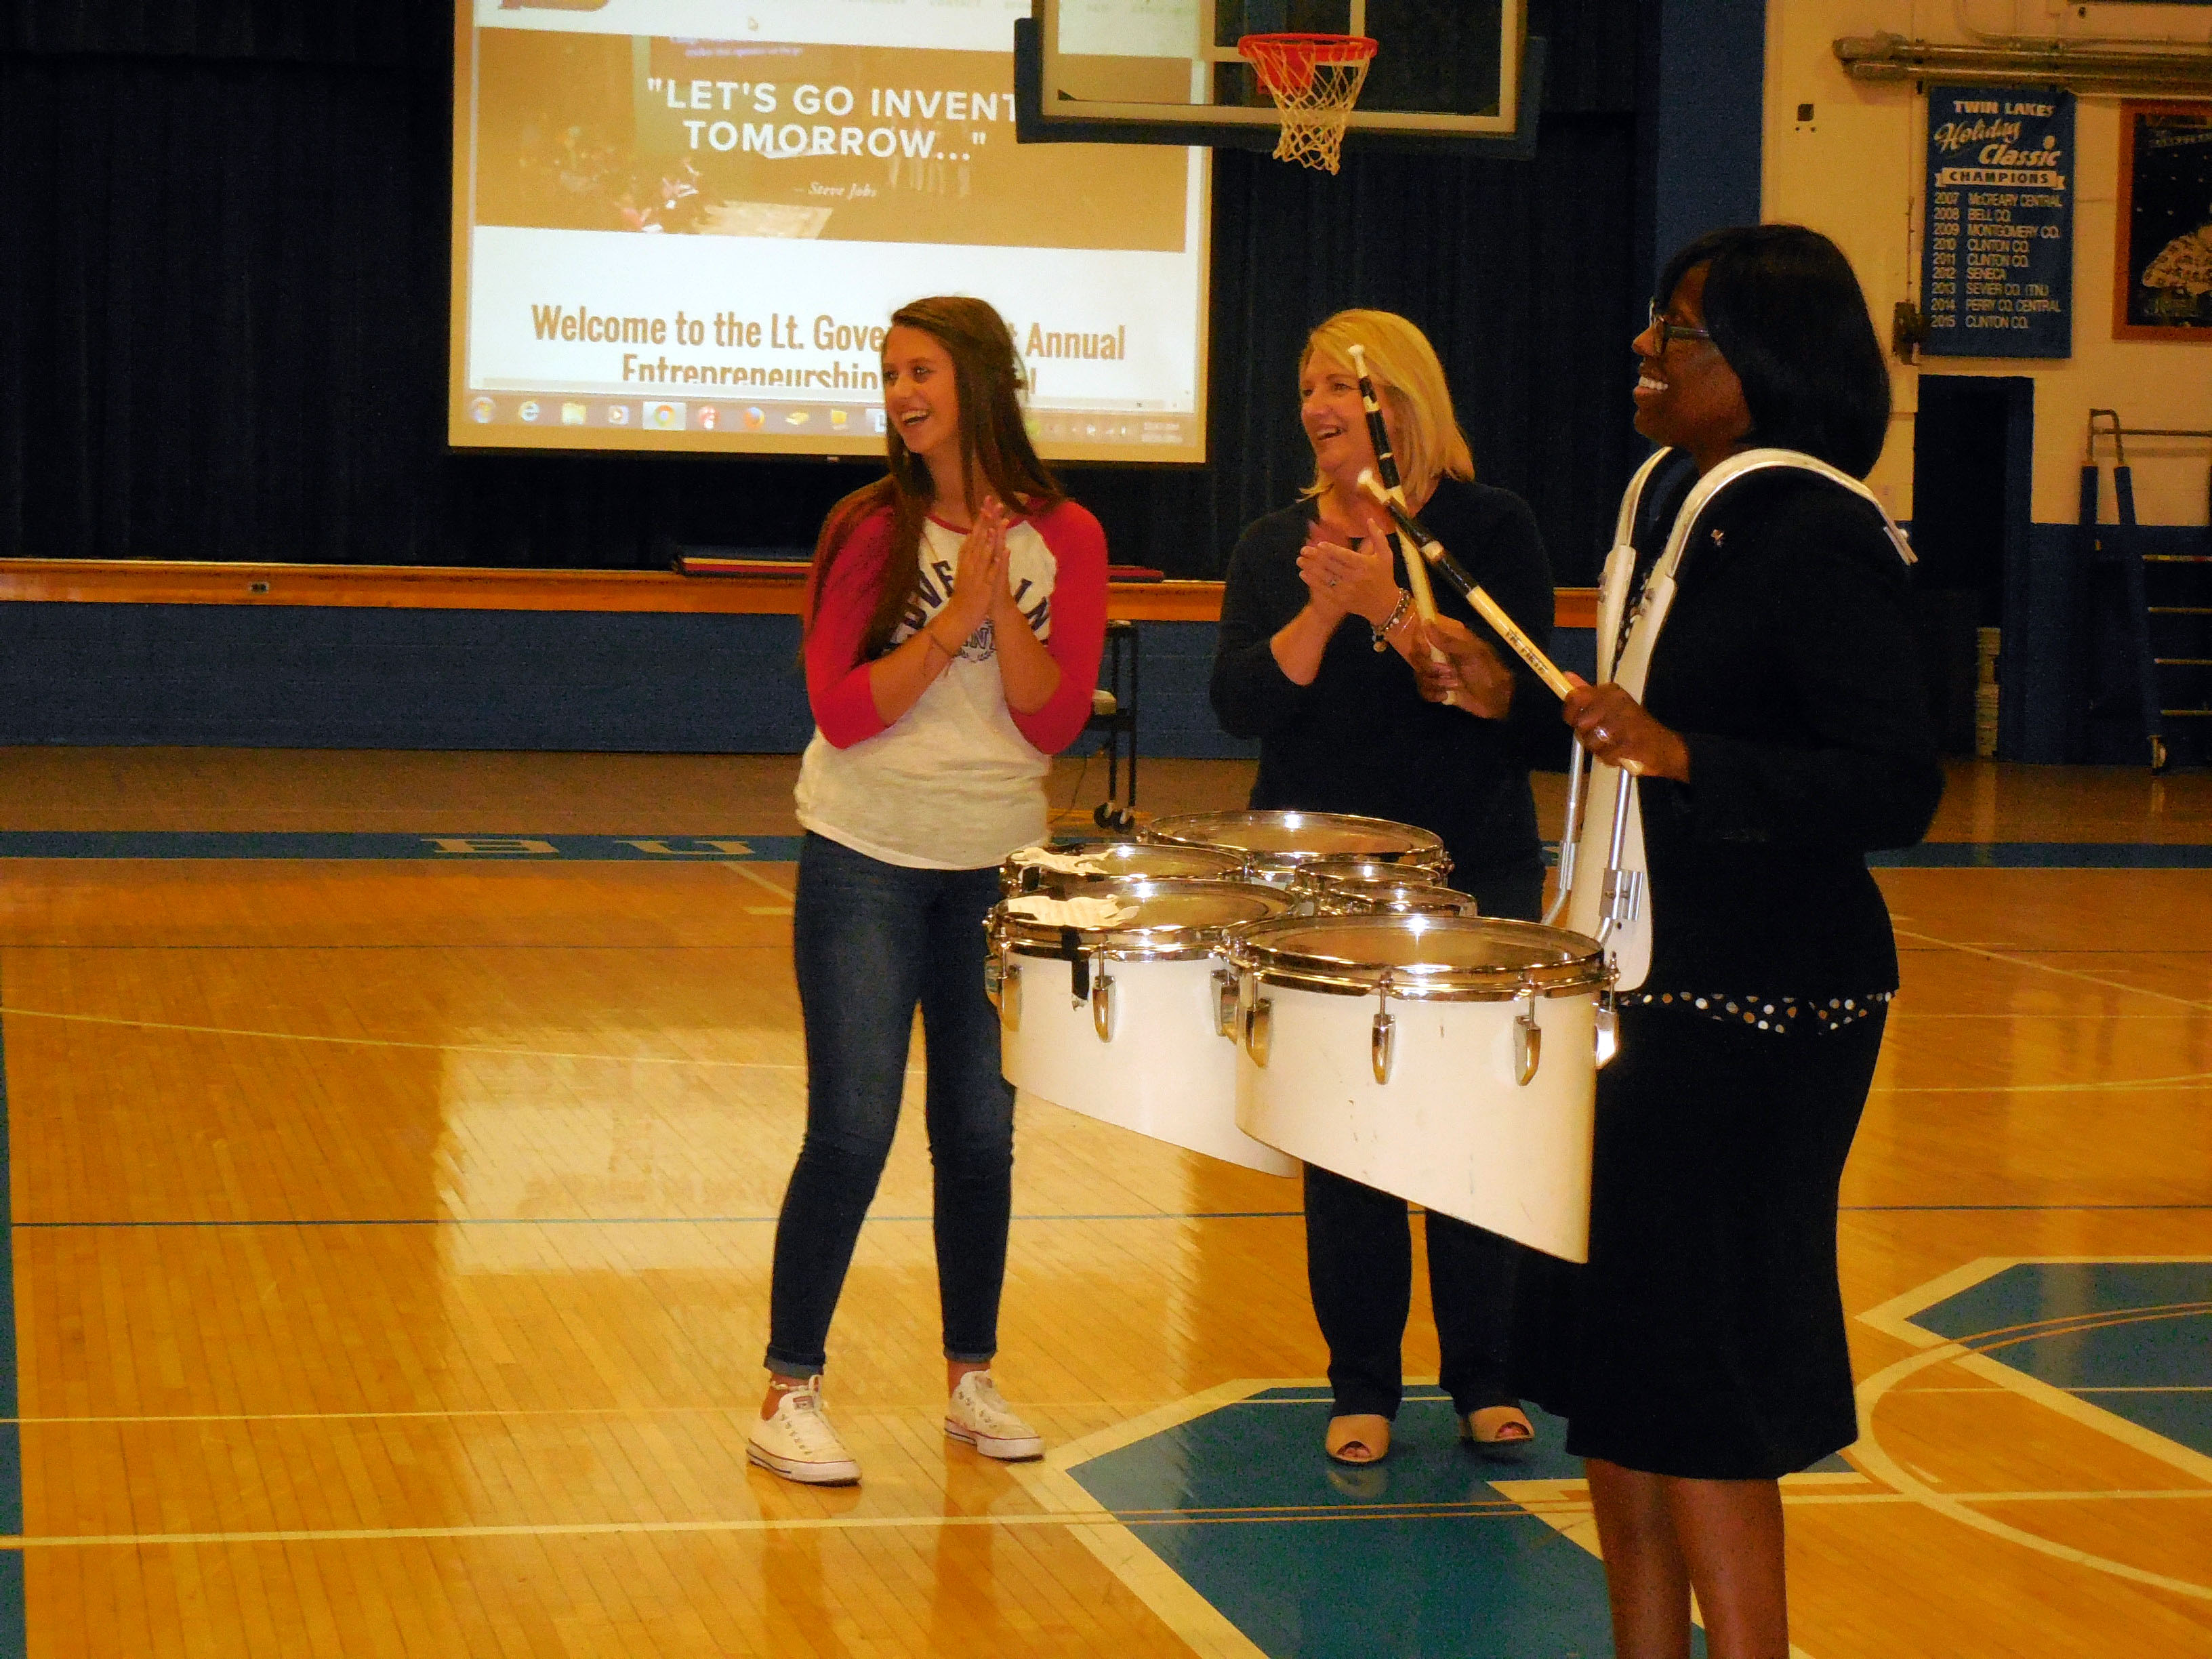 Lt. Governor Jenean Hampton played drums with the Clinton County High School marching band during her visit on October 20th to discuss her new initiative - the Lt. Governor's 1st Annual Entrepreneurship Challenge.